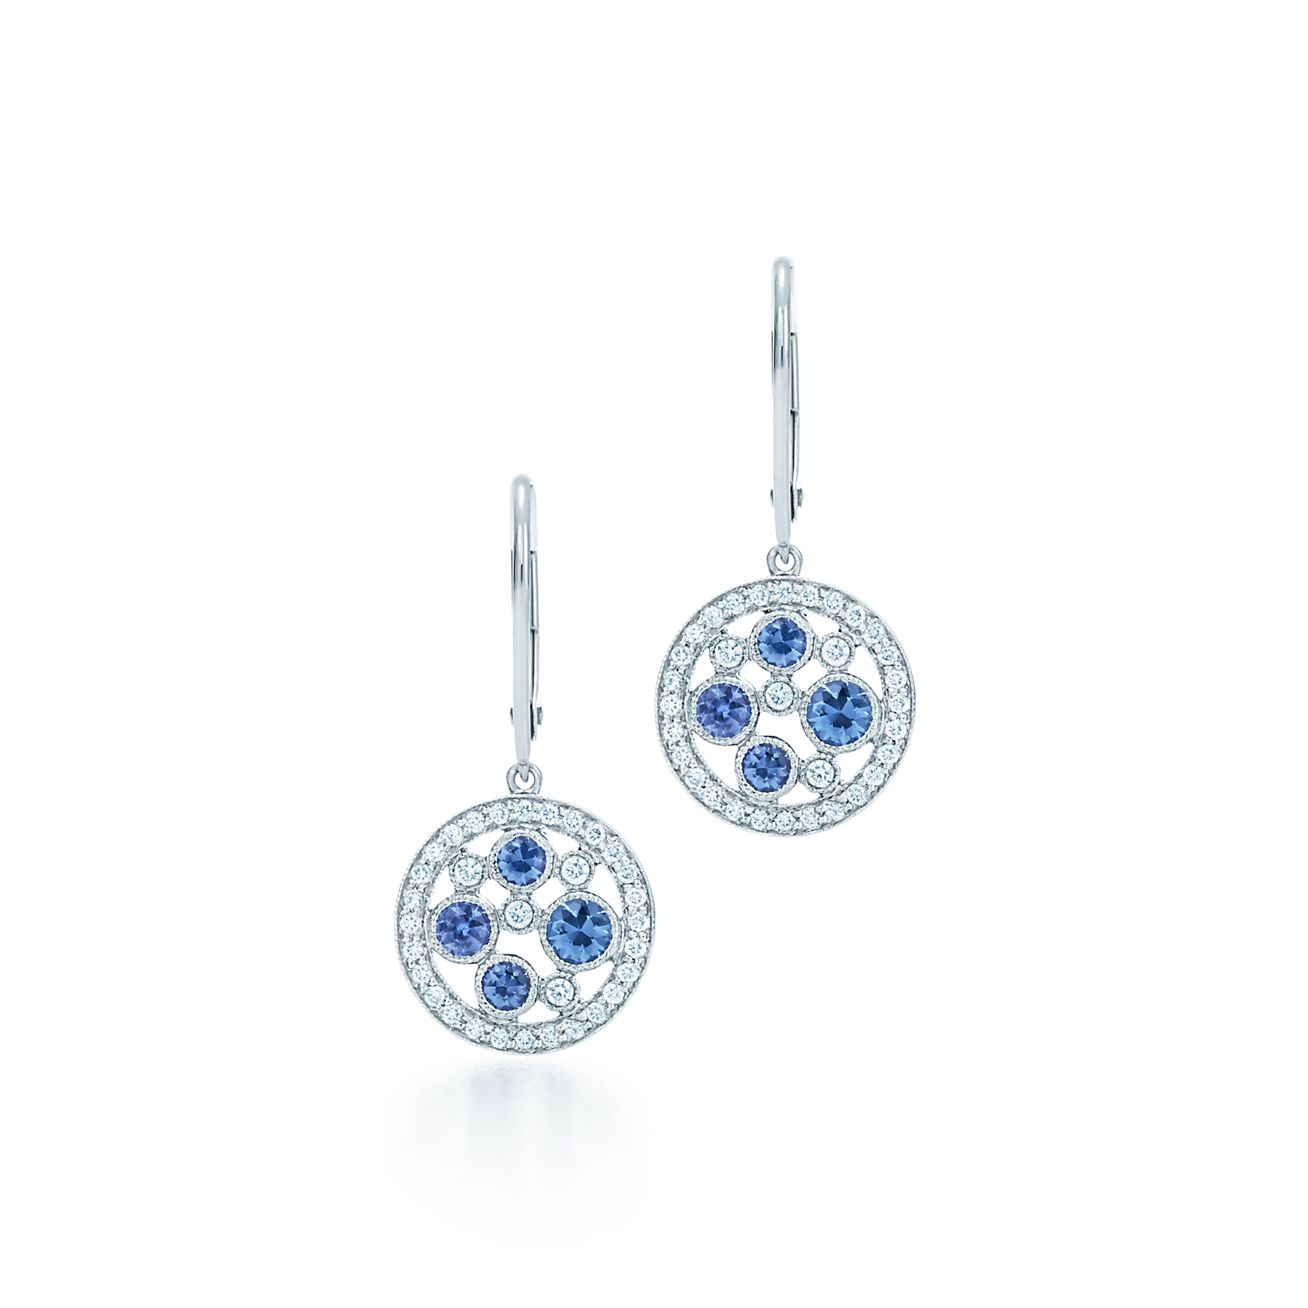 94ed25782 ... diamond earrings; tiffany cobblestone earrings in platinum with montana  sapphires. tiffany co. ...